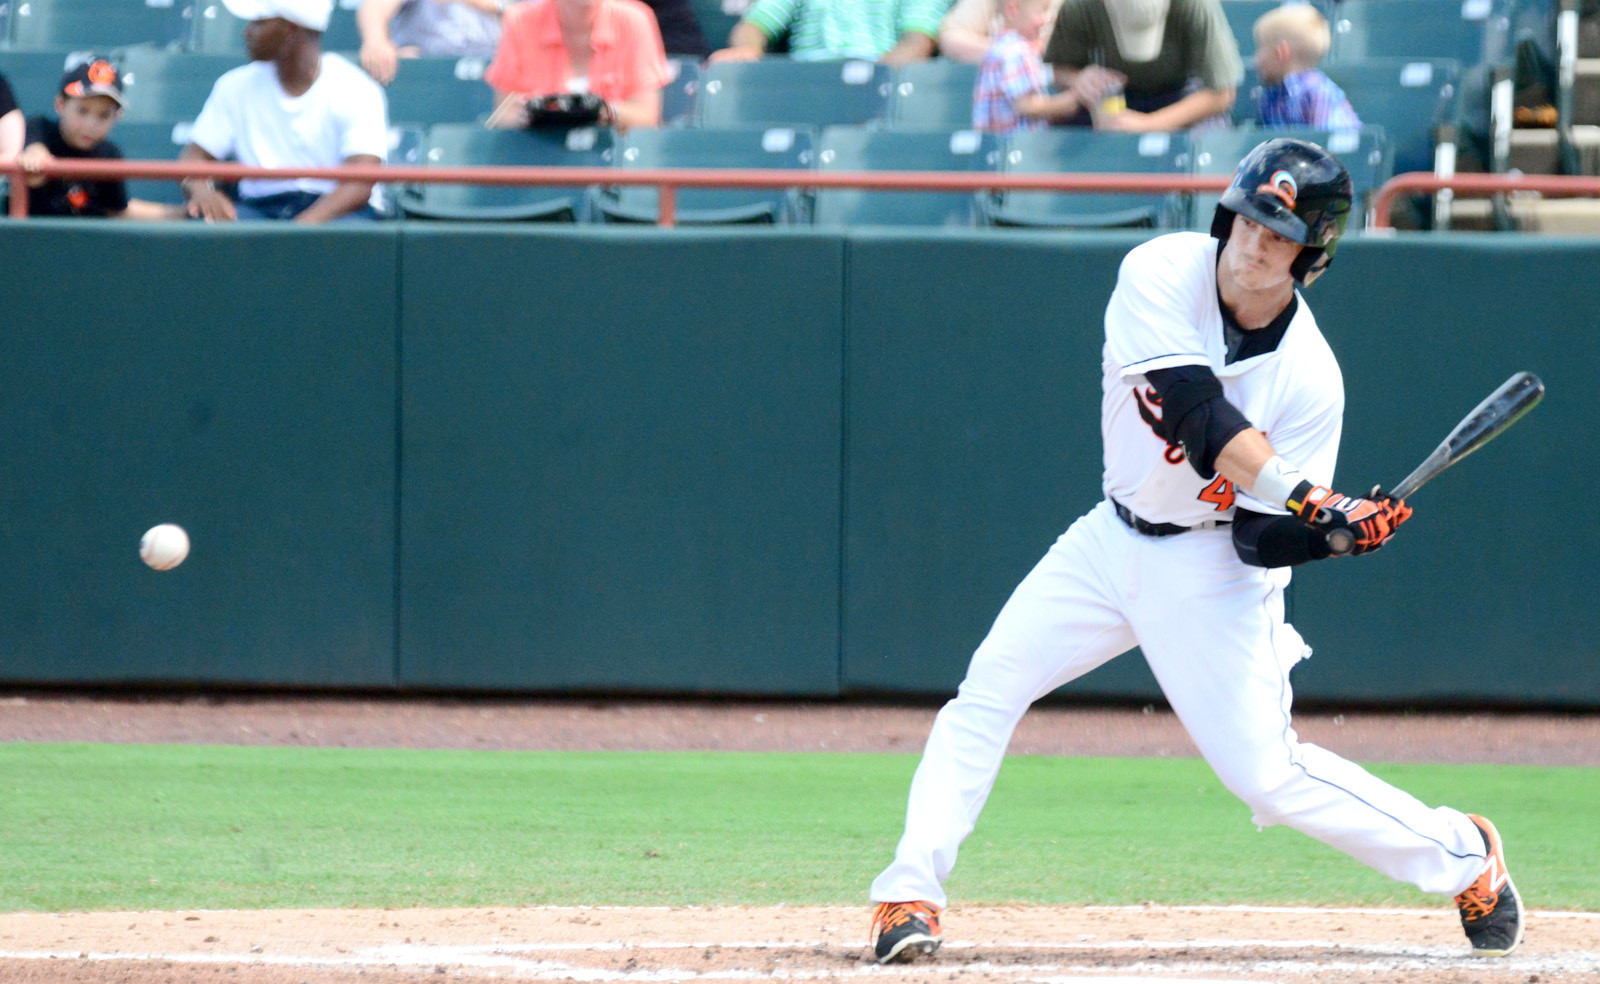 Bal-after-mike-yastrzemski-s-norfolk-debut-a-look-at-other-promotion-candidates-in-the-orioles-minors-20160516